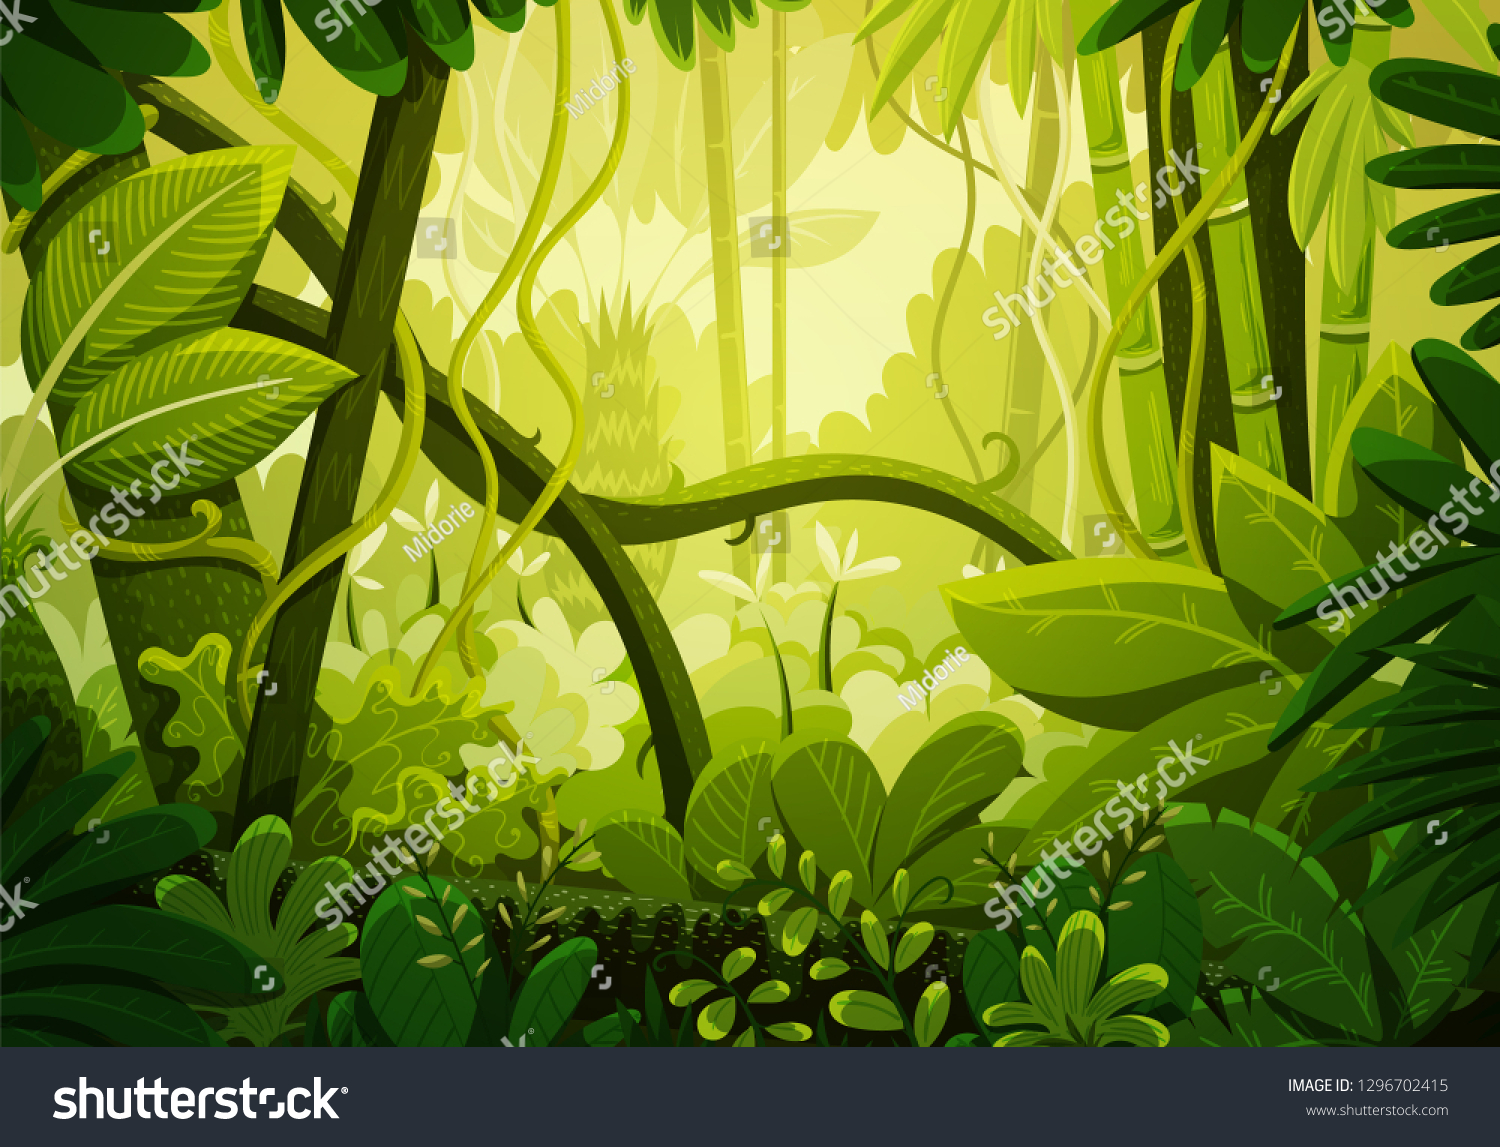 Vector illustration of tropical jungle background. Rainforest with dense vegetation of trees, bushes and lianes. Landscape with green colors.